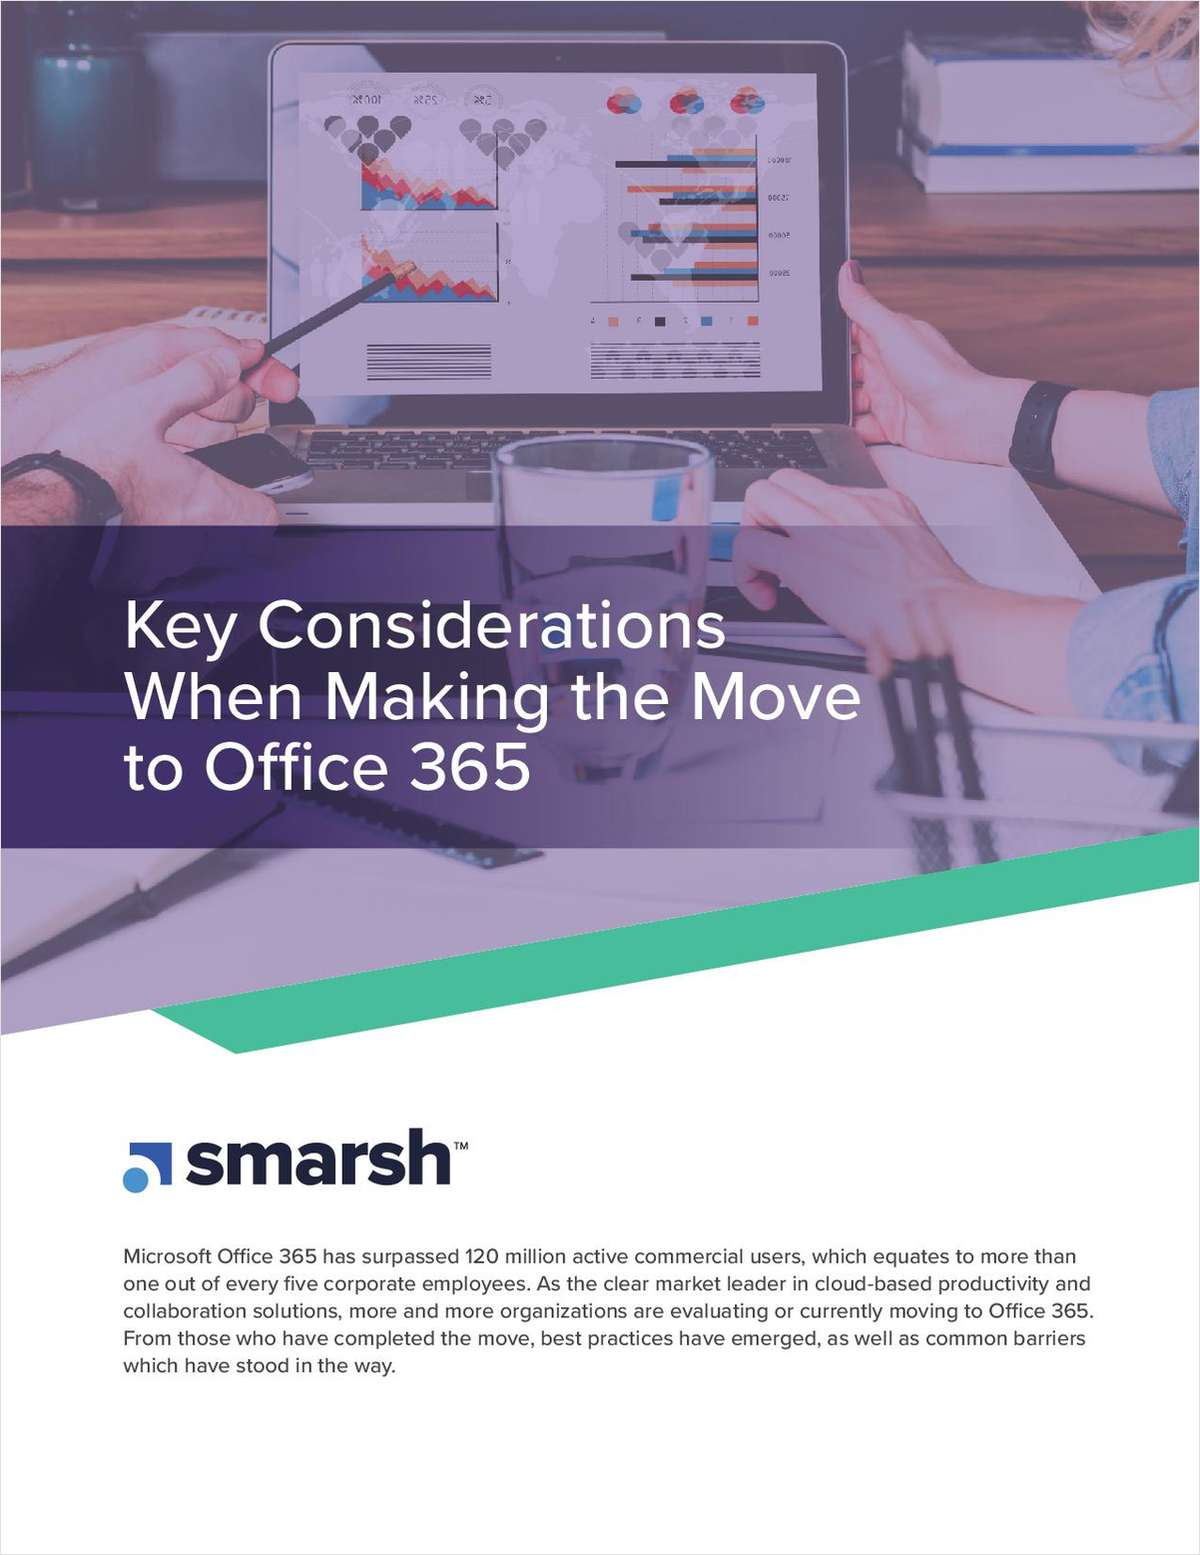 Key Considerations When Making the Move to Office 365